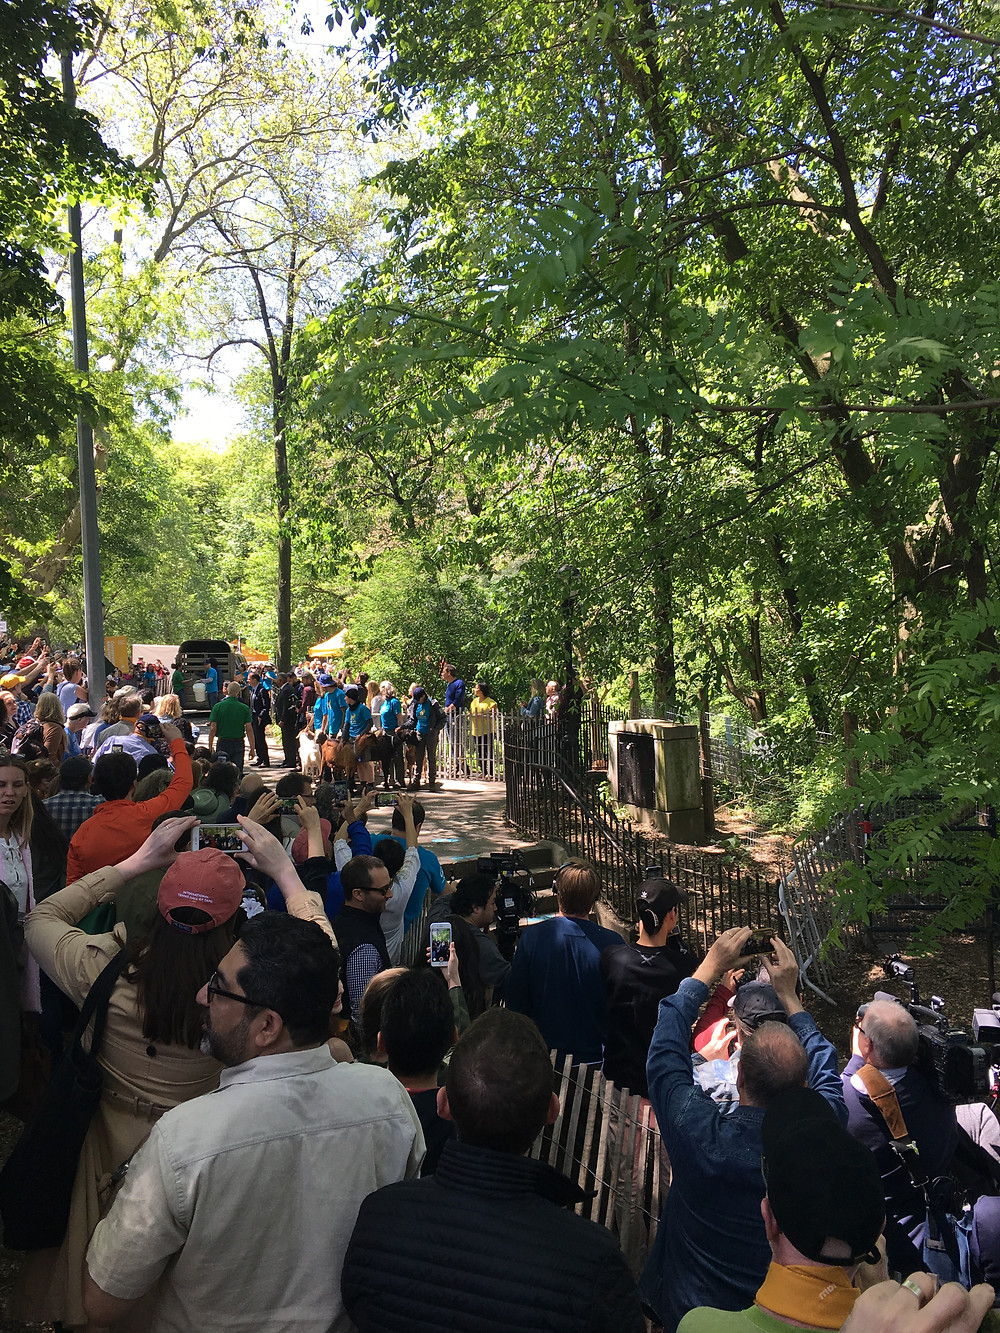 Reporters were there to see the goats released into the Riverside Park